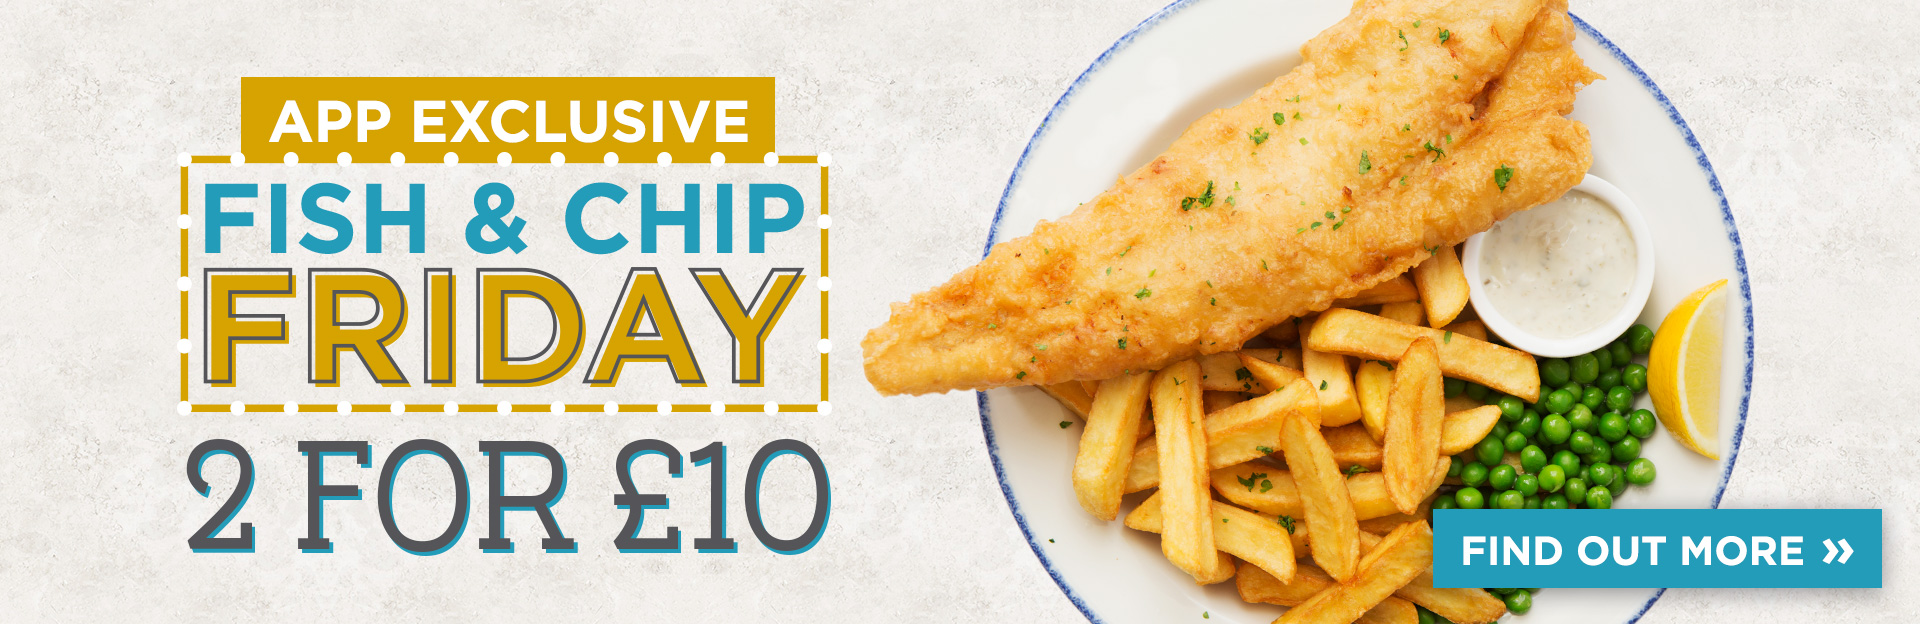 Fish & Chip Friday at The Kings Arms